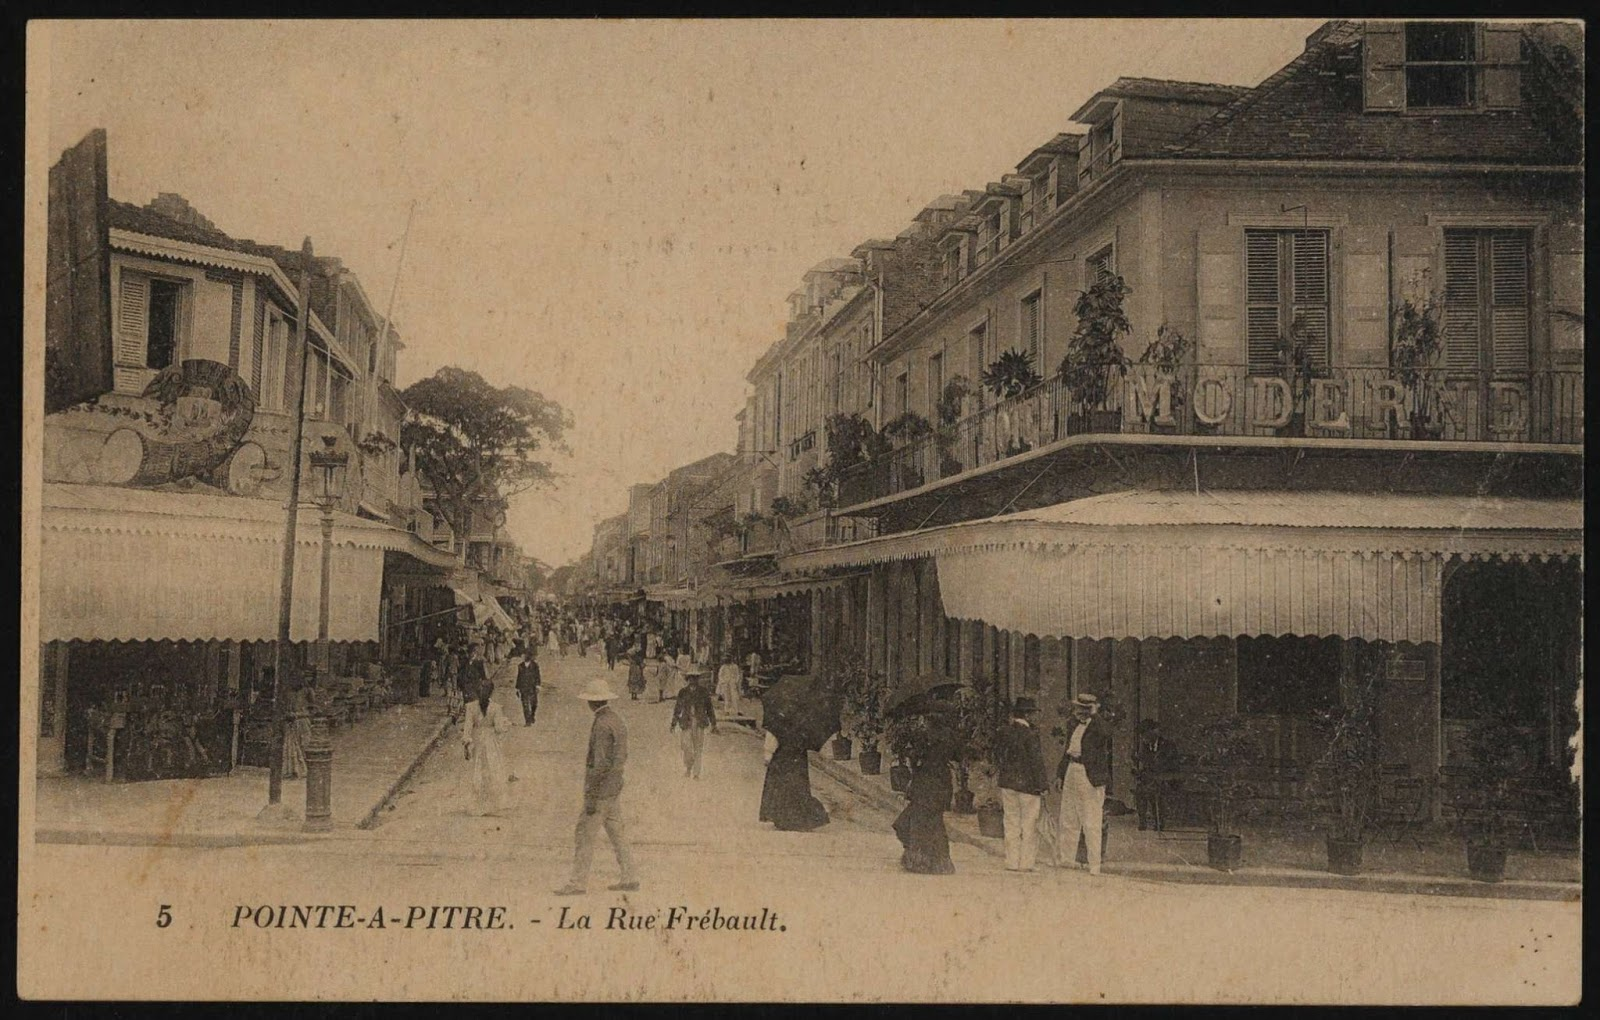 rue frebault pointe a pitre guadeloupe marche aux epices saint antoine spicies caribbean travel french west indies france antilles blog lifestyle caraibe blogueuse island escape landscape madeinguadeloupe